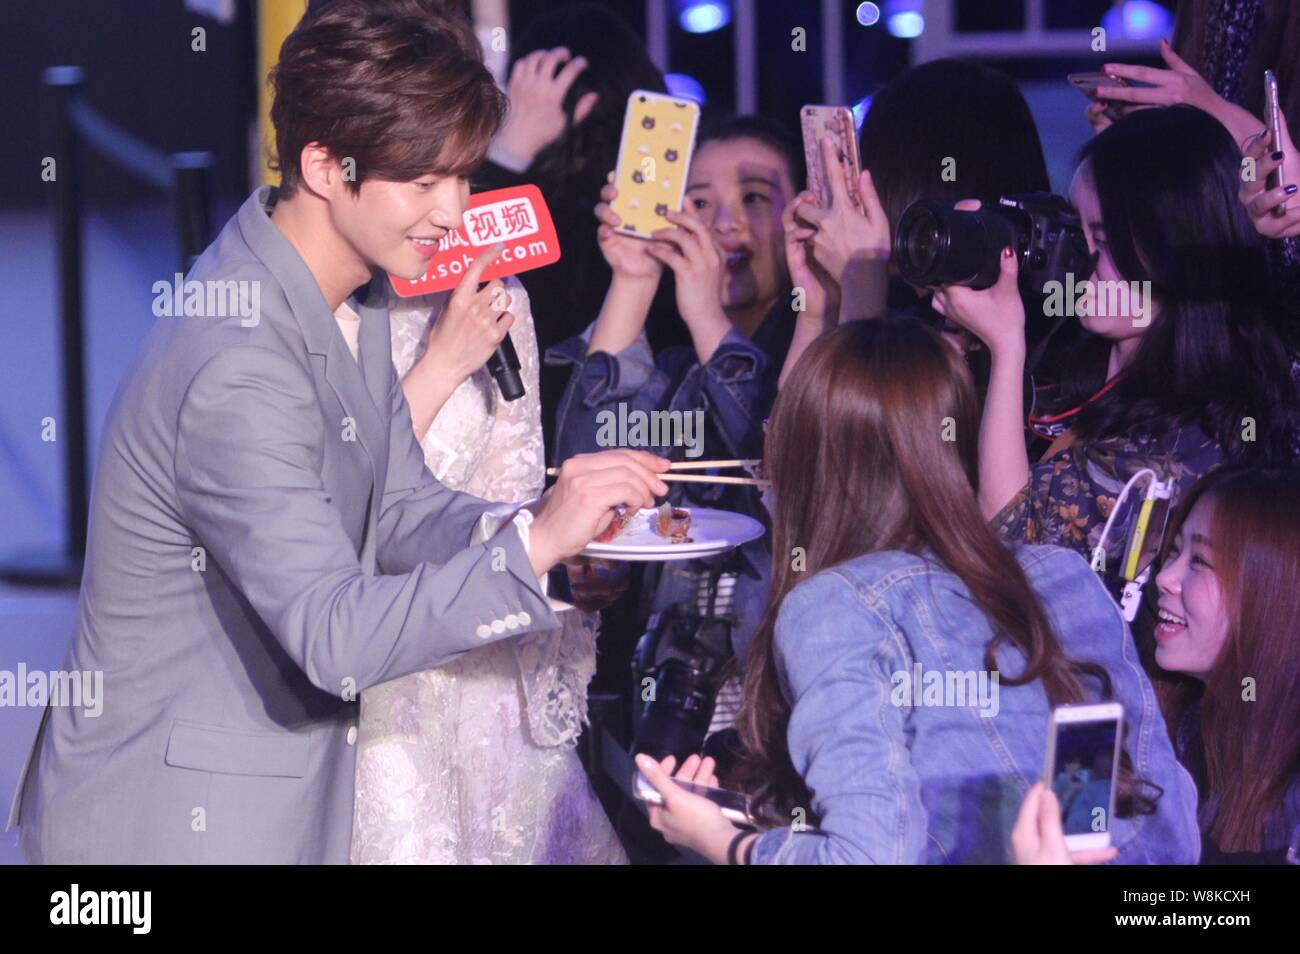 Song Jae Rim Stock Photos & Song Jae Rim Stock Images - Alamy